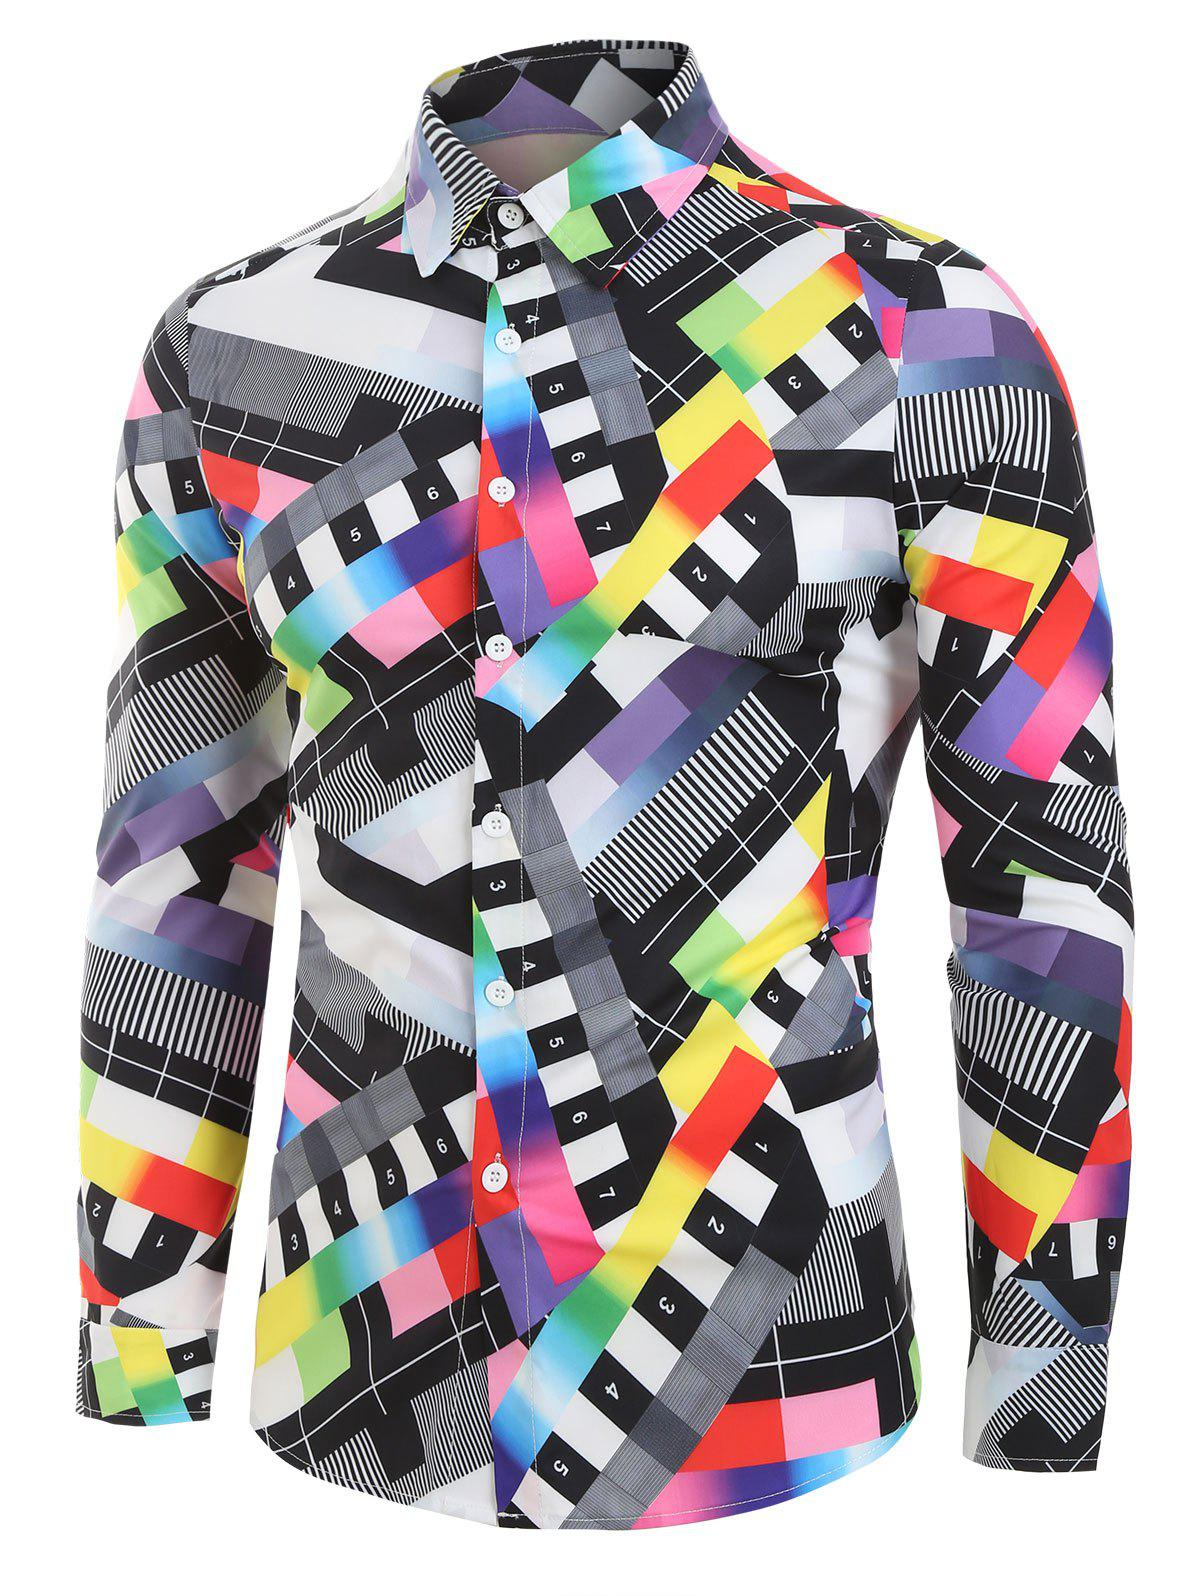 Affordable Colorful Patchwork Print Long Sleeve Button Up Shirt